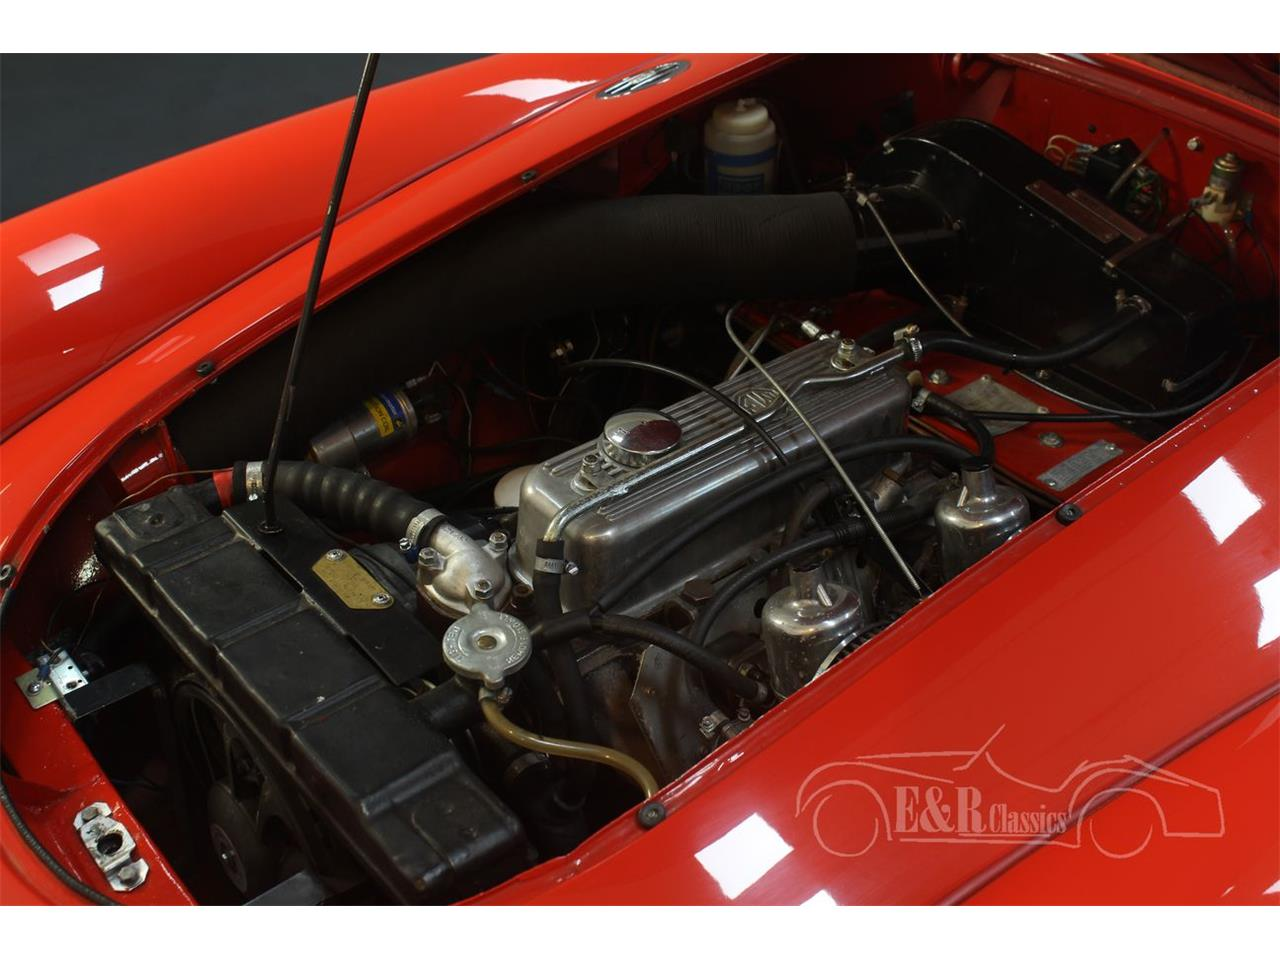 Large Picture of Classic 1962 MG MGA - $45,000.00 Offered by E & R Classics - QKGO